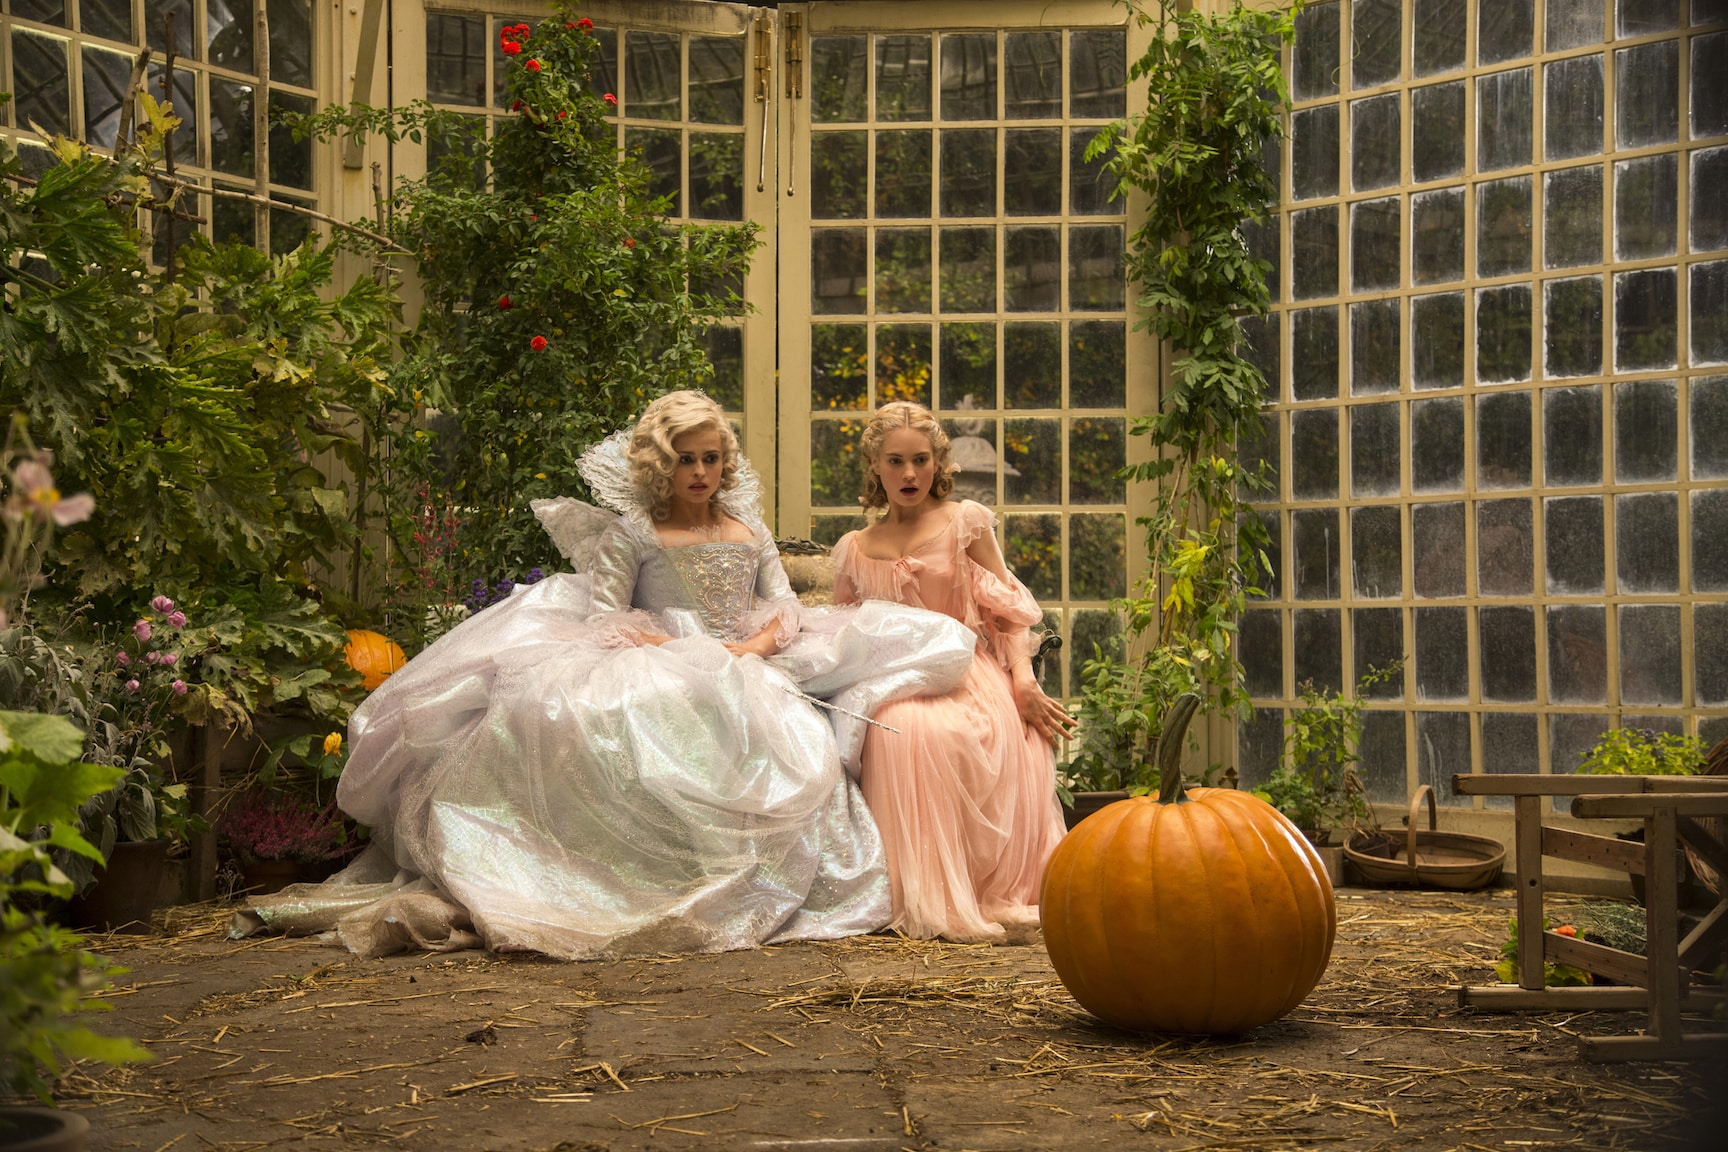 Actors Helena Bonham Carter (as the Fairy Godmother) and Lily James (as Cinderella) staring at a pumpkin in the movie Cinderella.